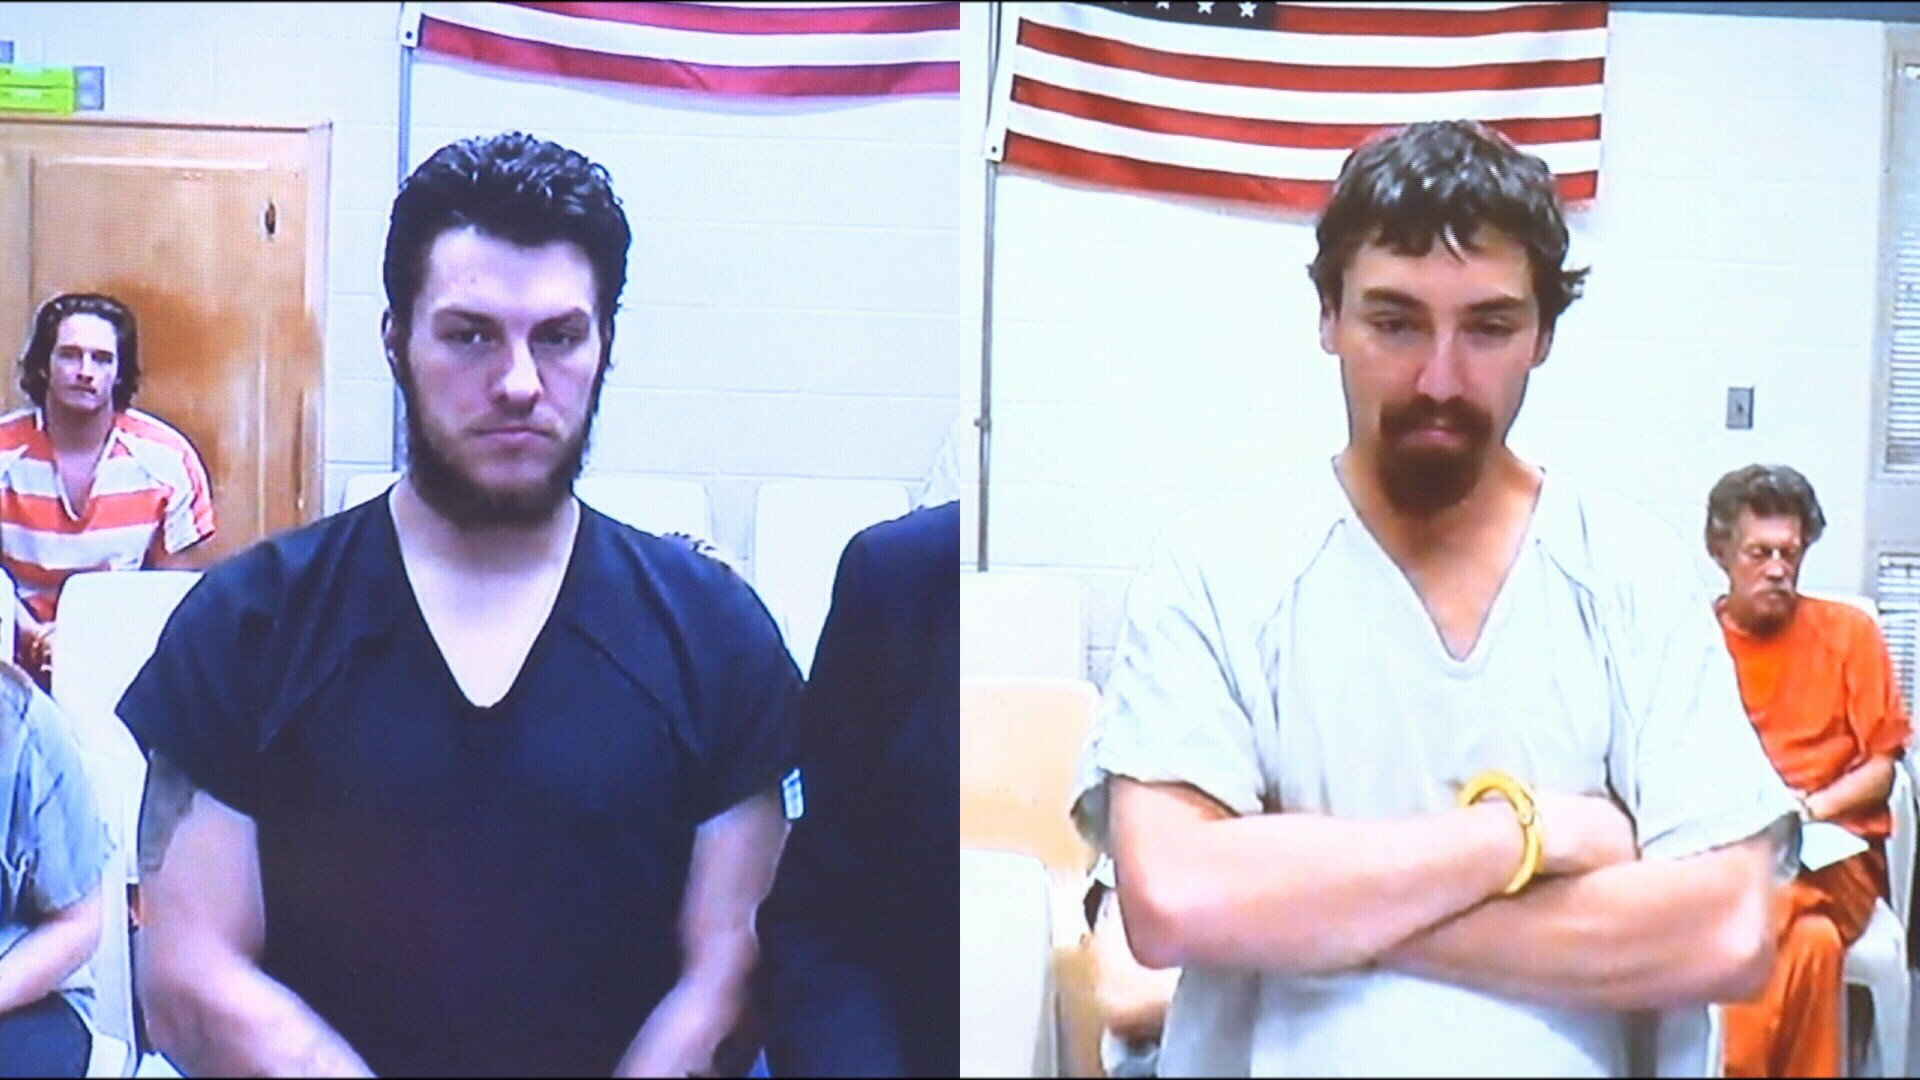 Cherry (left) and Haverty (right) are charged with deliberate homicide (MTN News)